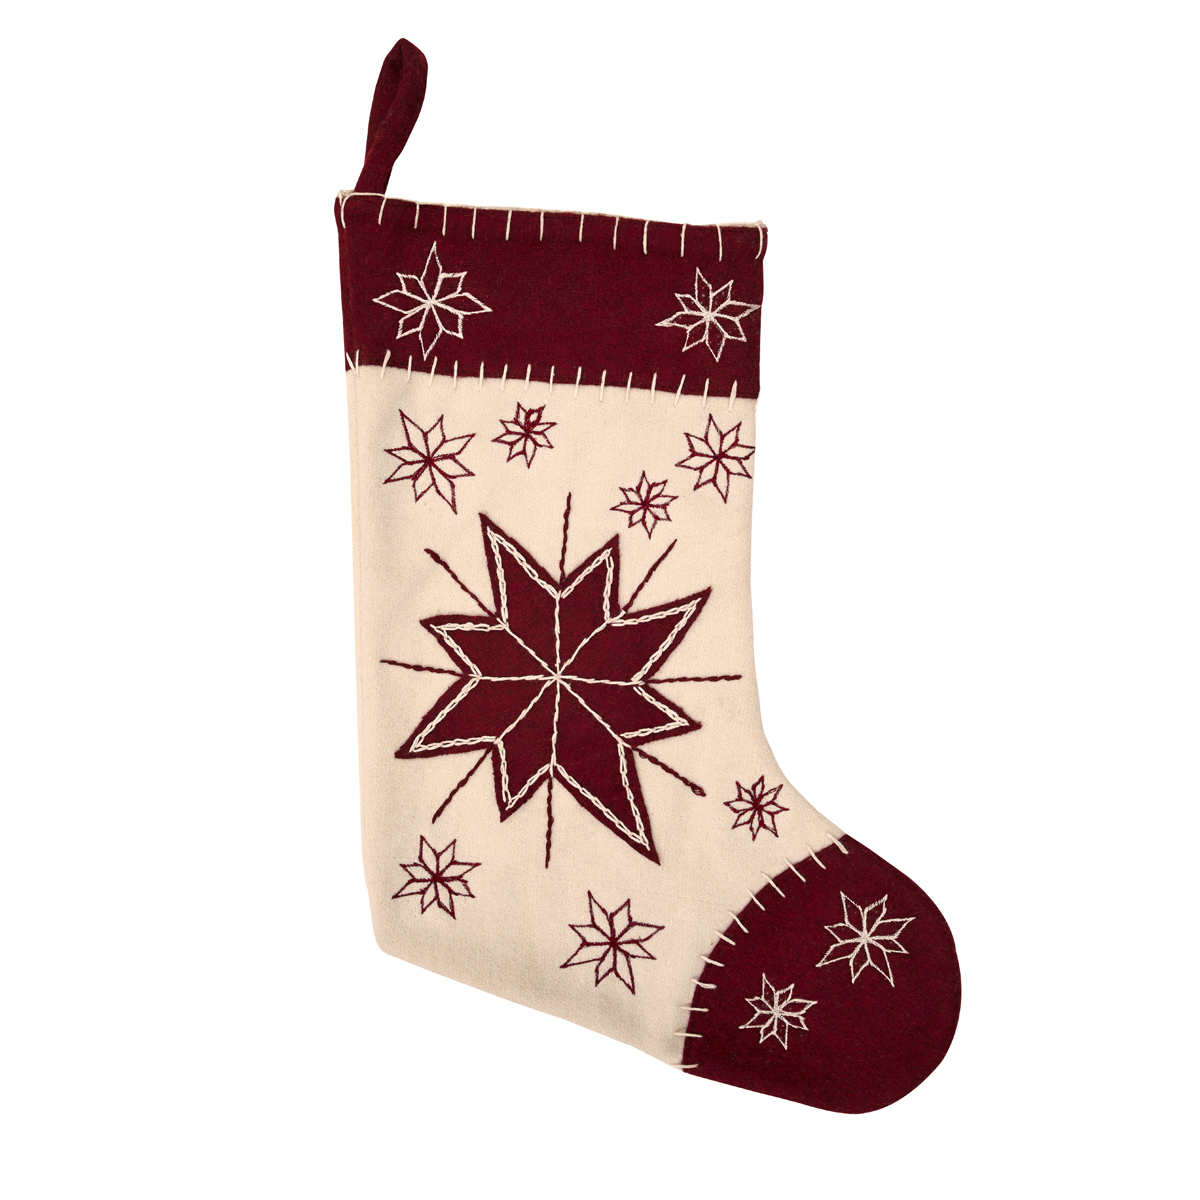 North Star Stocking